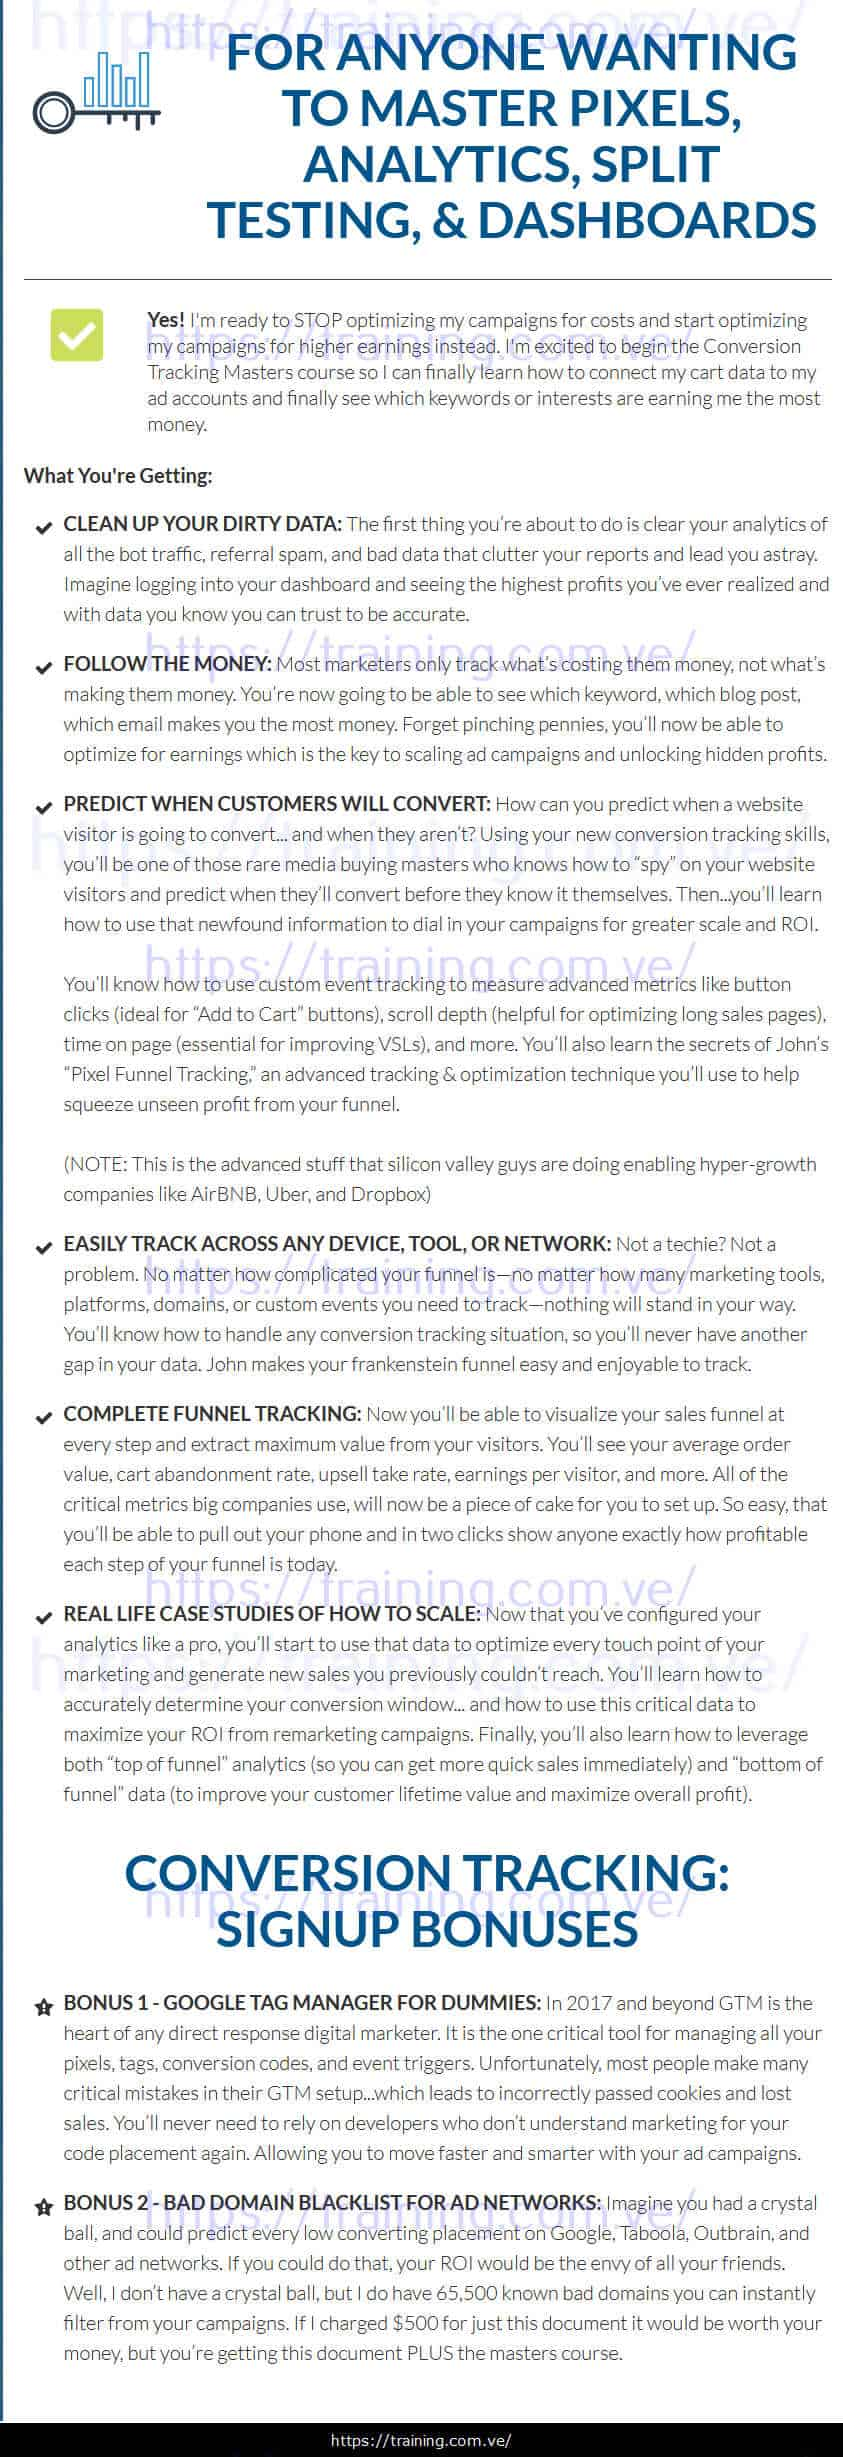 Conversion Tracking Masters 2.0 by Adskill sales page